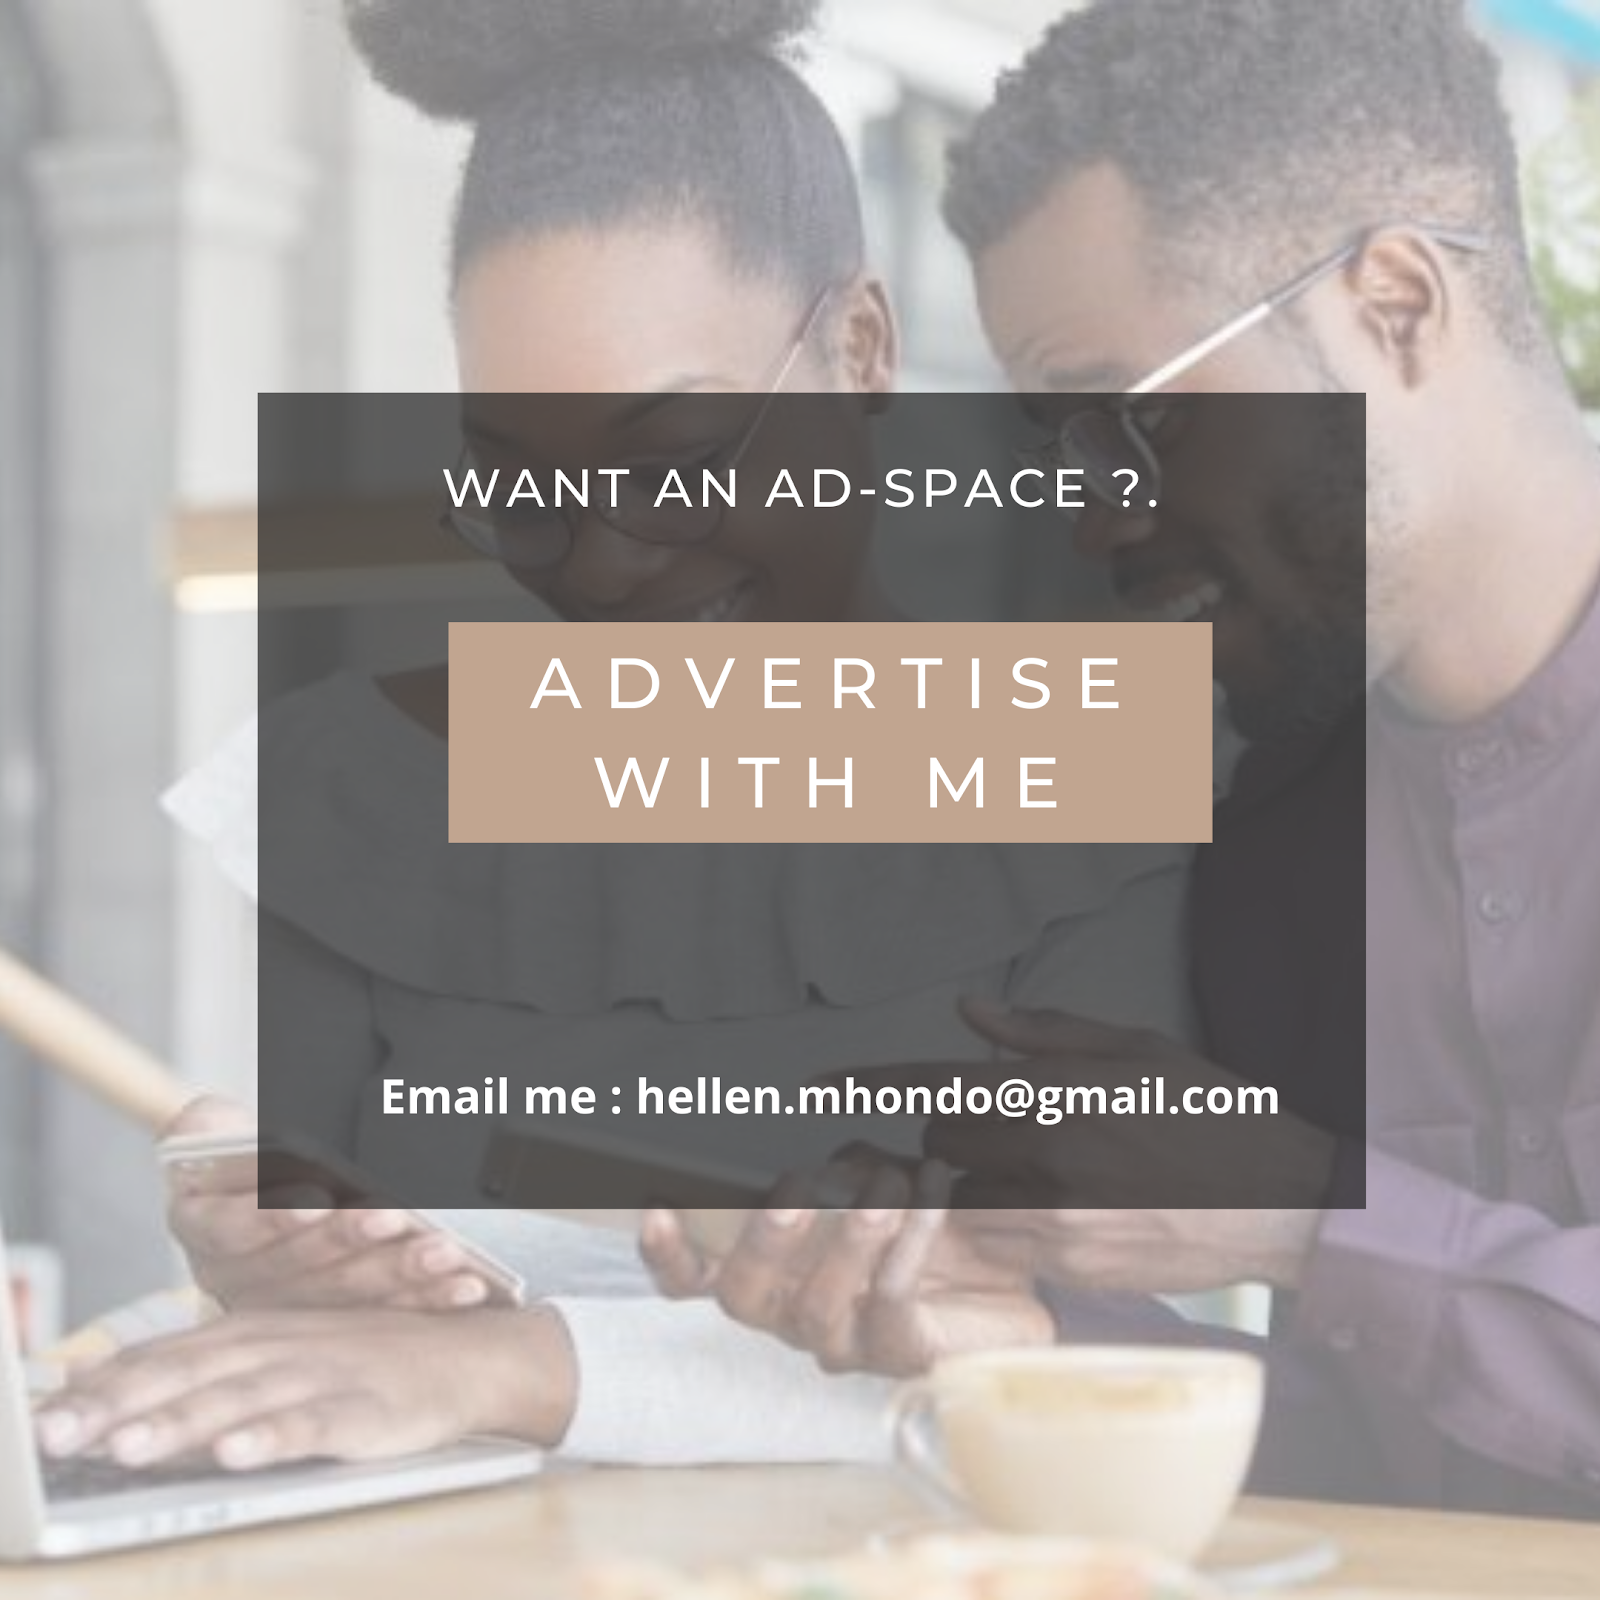 ADVERTISE WITH ME